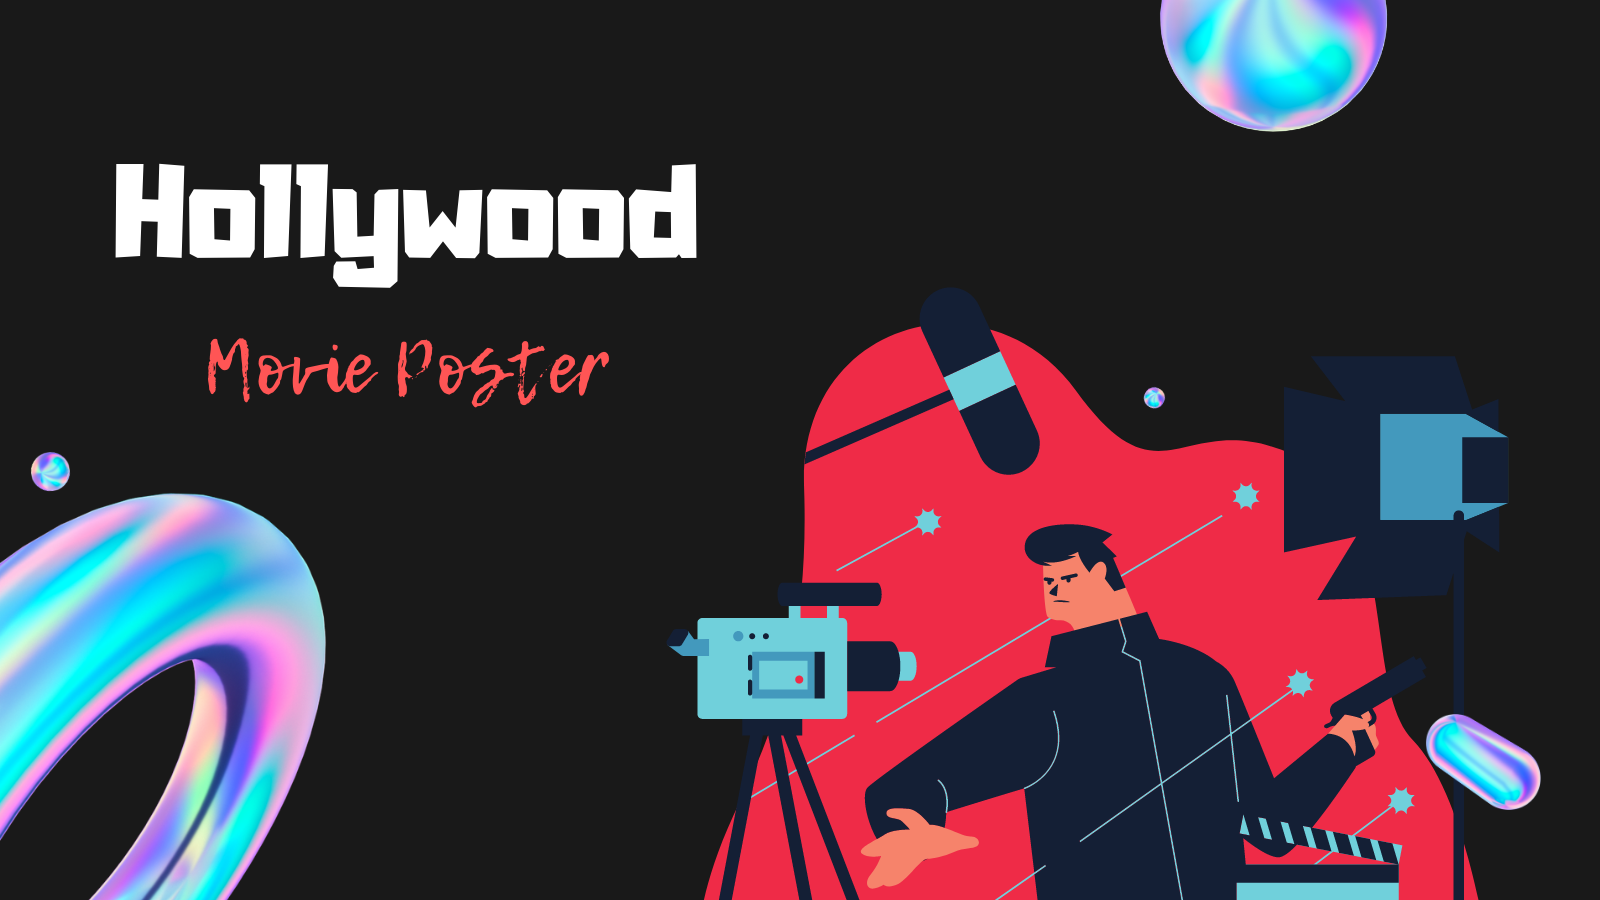 Hollywood Movie Poster - Art Challenge